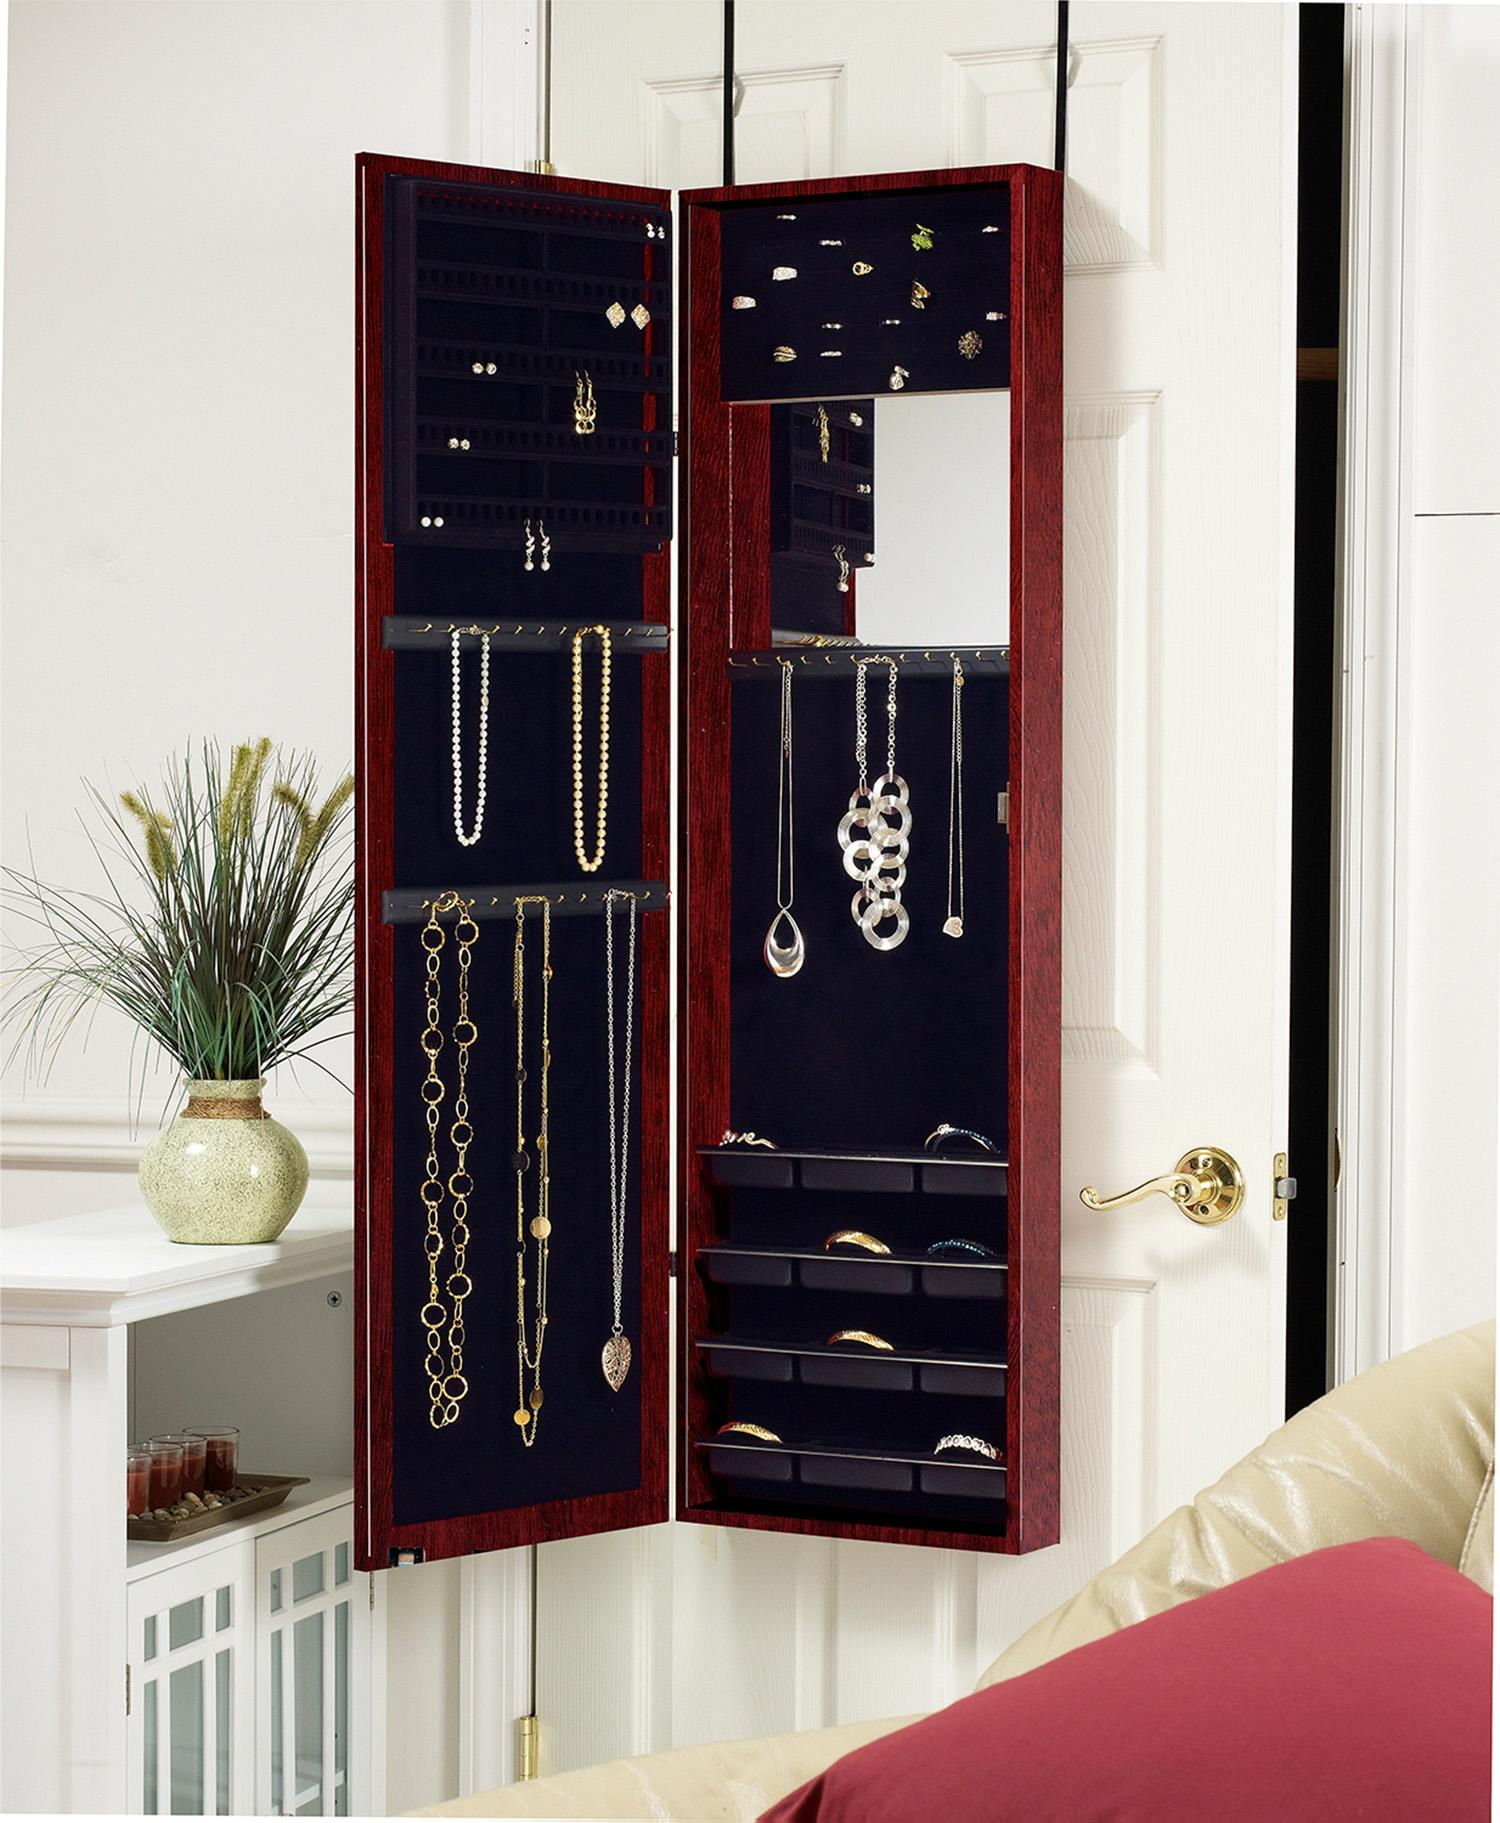 Amazon.com: Plaza Astoria Over The Door/Wall-Mount Jewelry Armoire ...